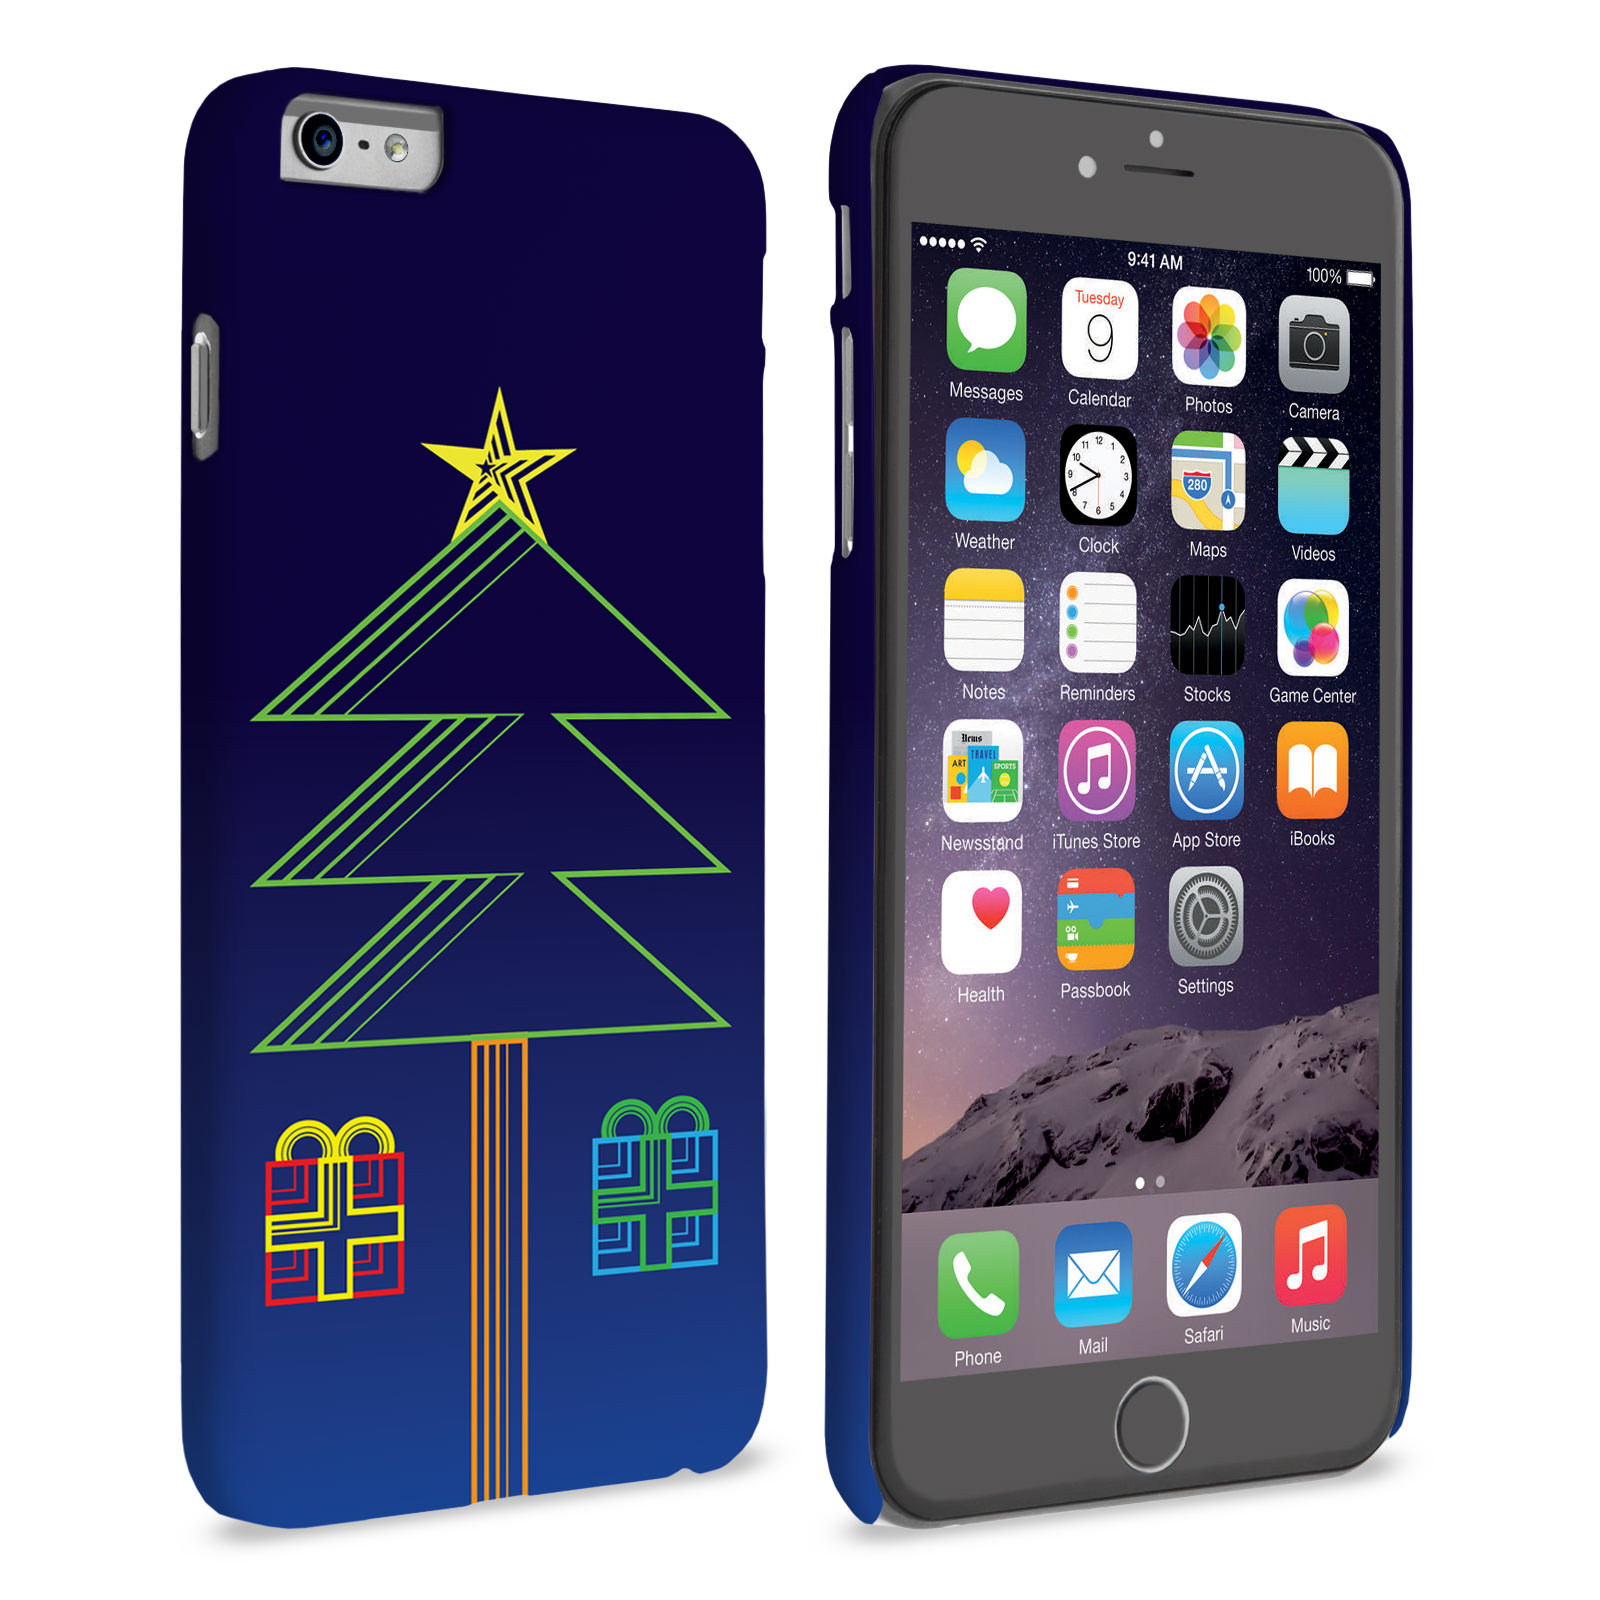 Iphone 6 Plus Christmas Case.Caseflex Iphone 6 Plus And 6s Plus Christmas Tree Presents Hard Case